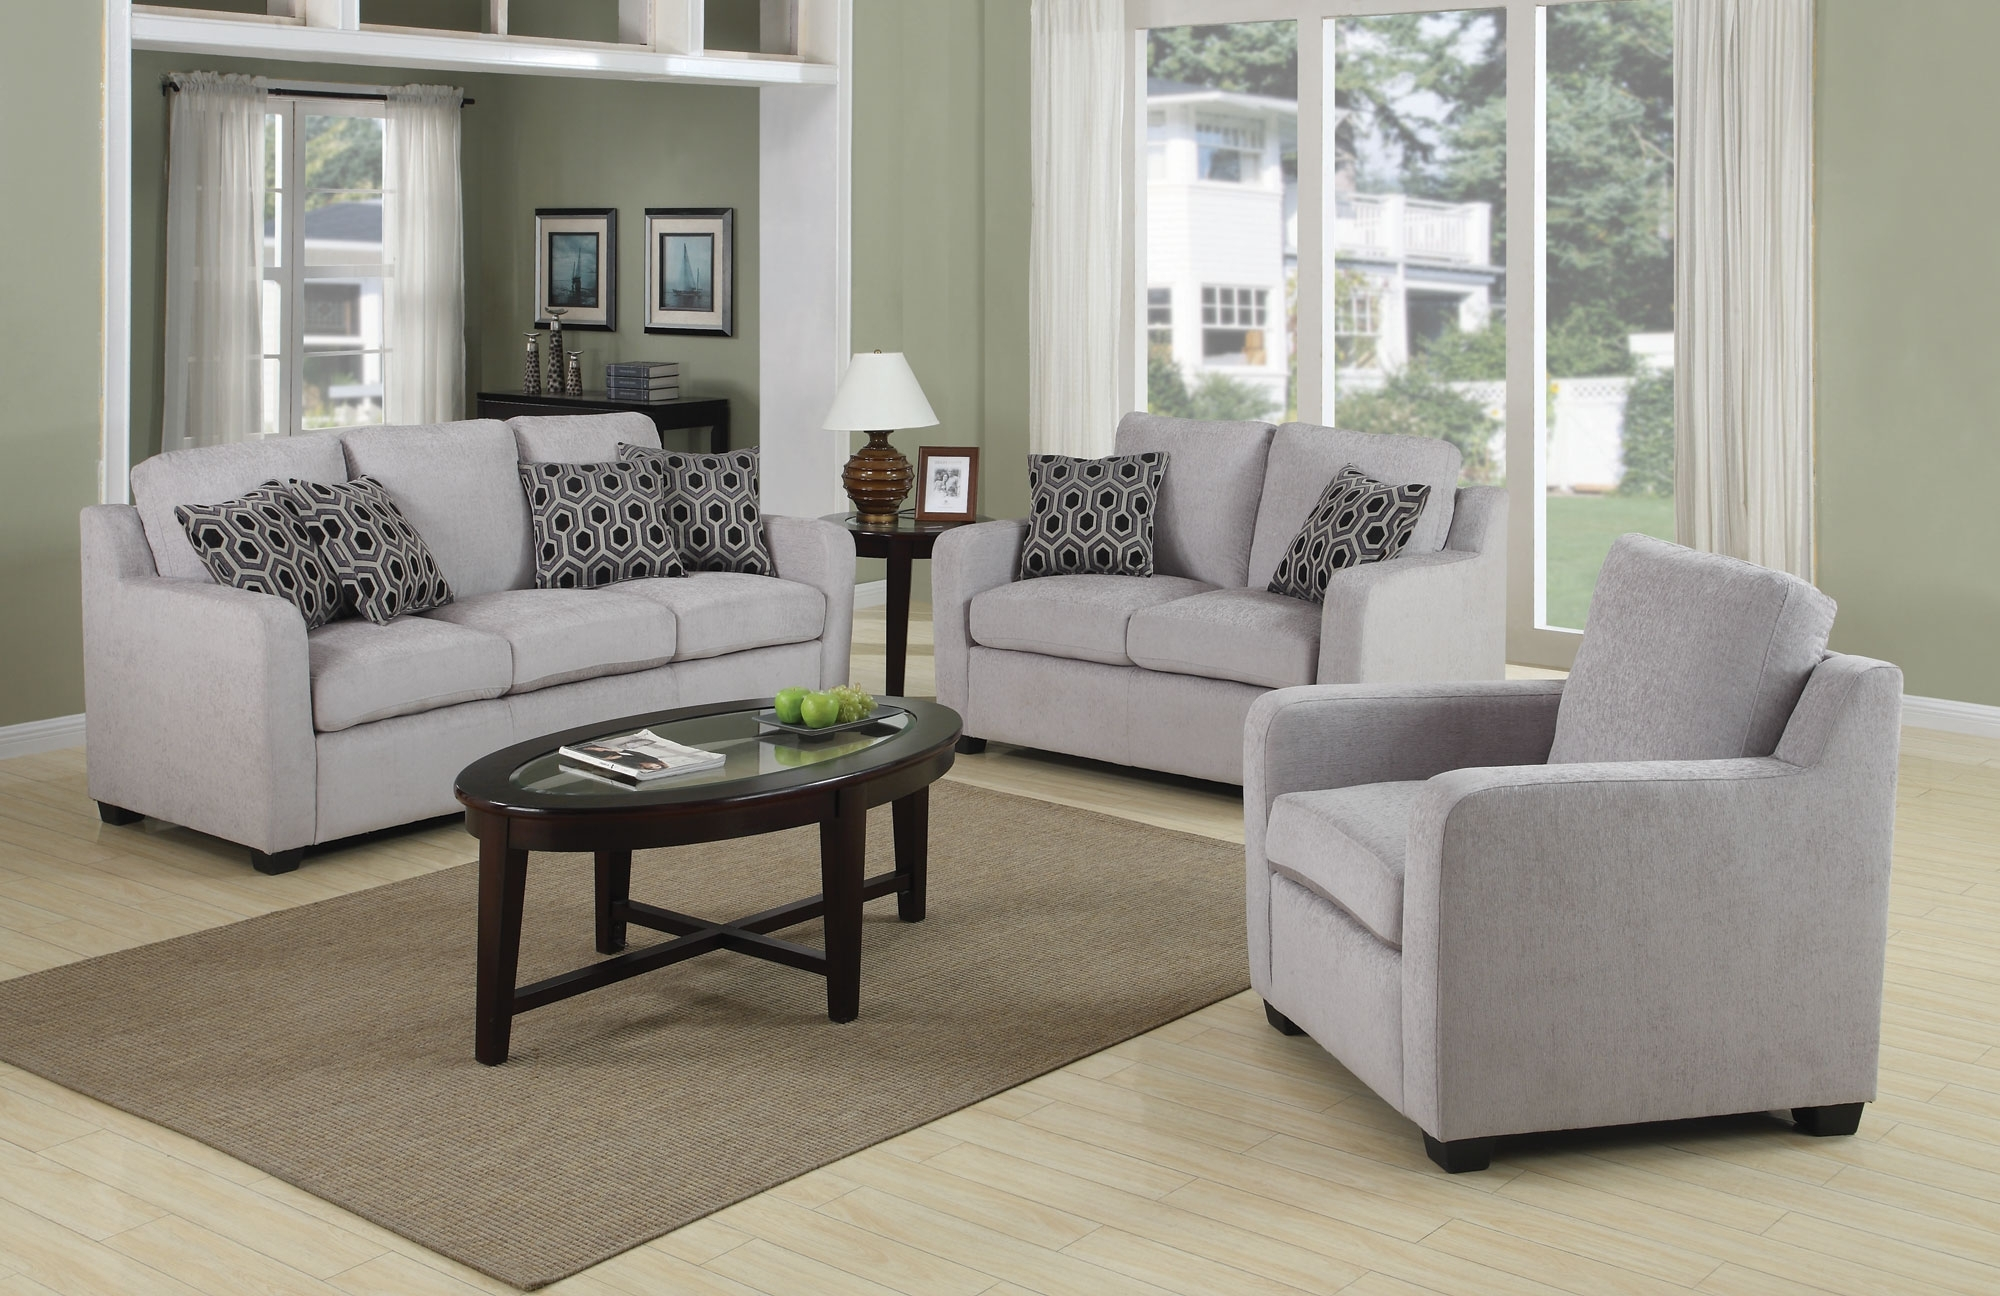 Favorite Furniture: Amazing Set Of Chairs For Living Room 3 Piece Living Within Sofa Chairs For Living Room (View 6 of 15)